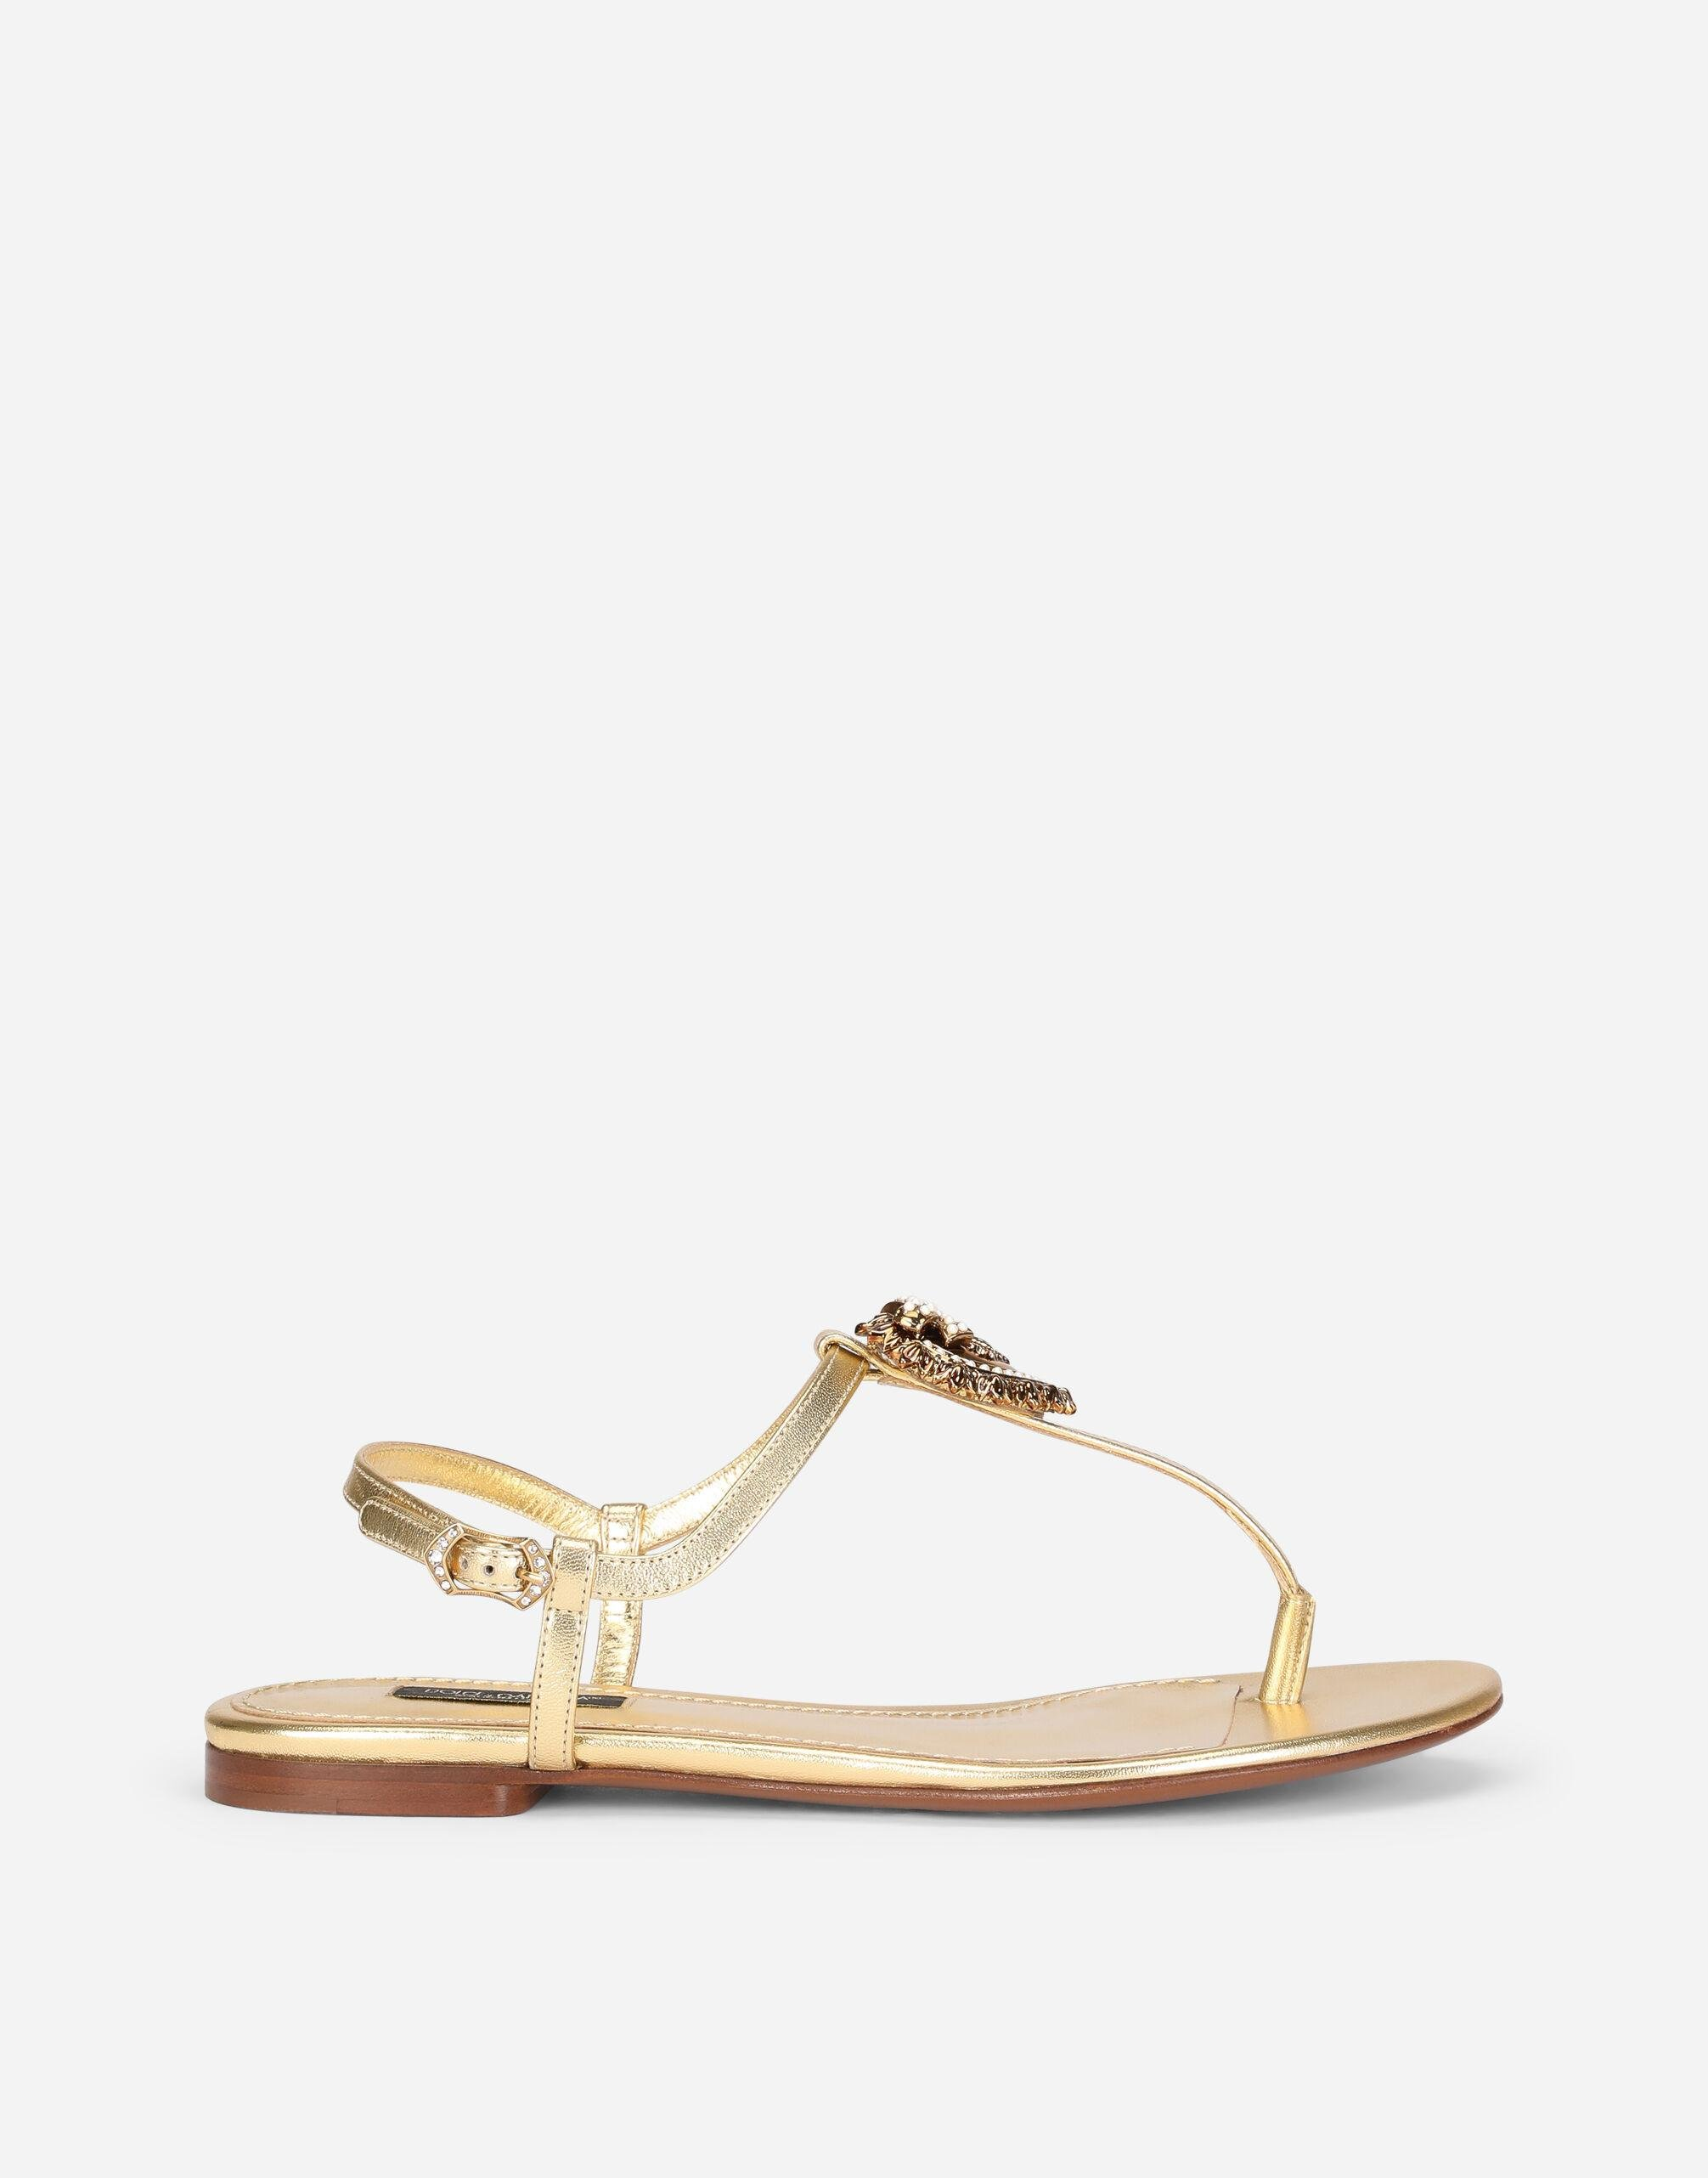 Nappa leather Devotion thong sandals